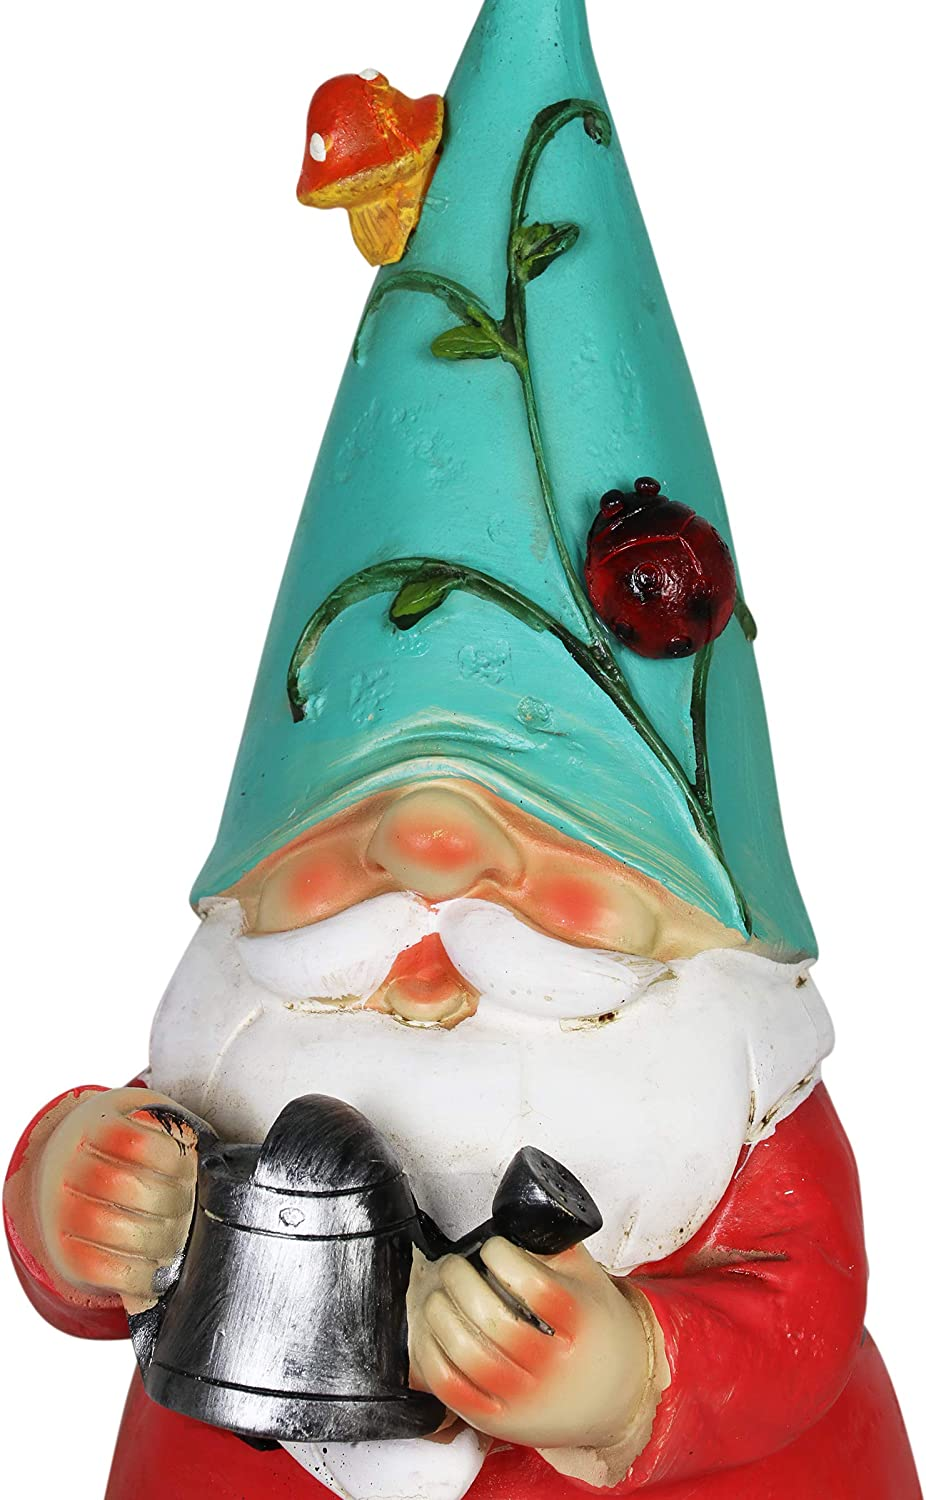 5 L x 5 W x 10 H Exhart Solar Gnome Garden Statue w//Watering Can Teal Hat Gnome Resin Statue Holding a Watering Can Garden Elf Decor Solar Decor Lights in Butterfly /& Snail Design